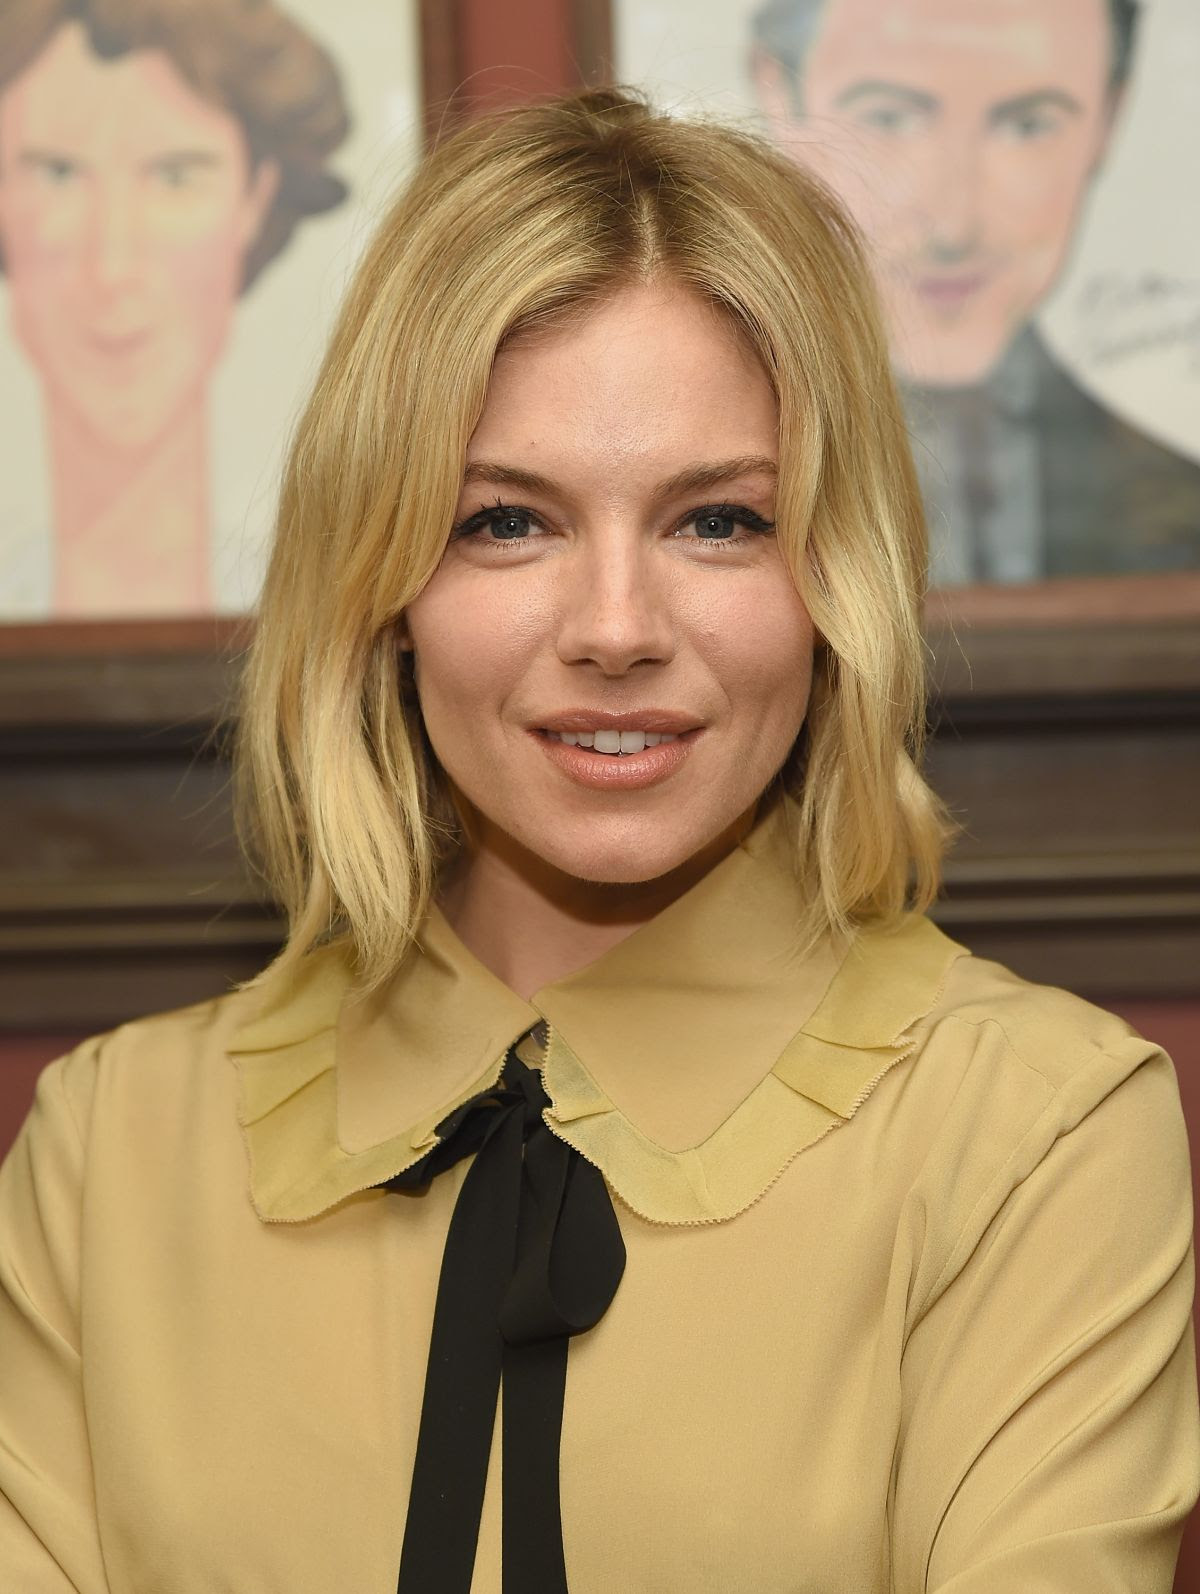 SIENNA MILLER at Sienna Miller Caricature Unveiling at Sardi